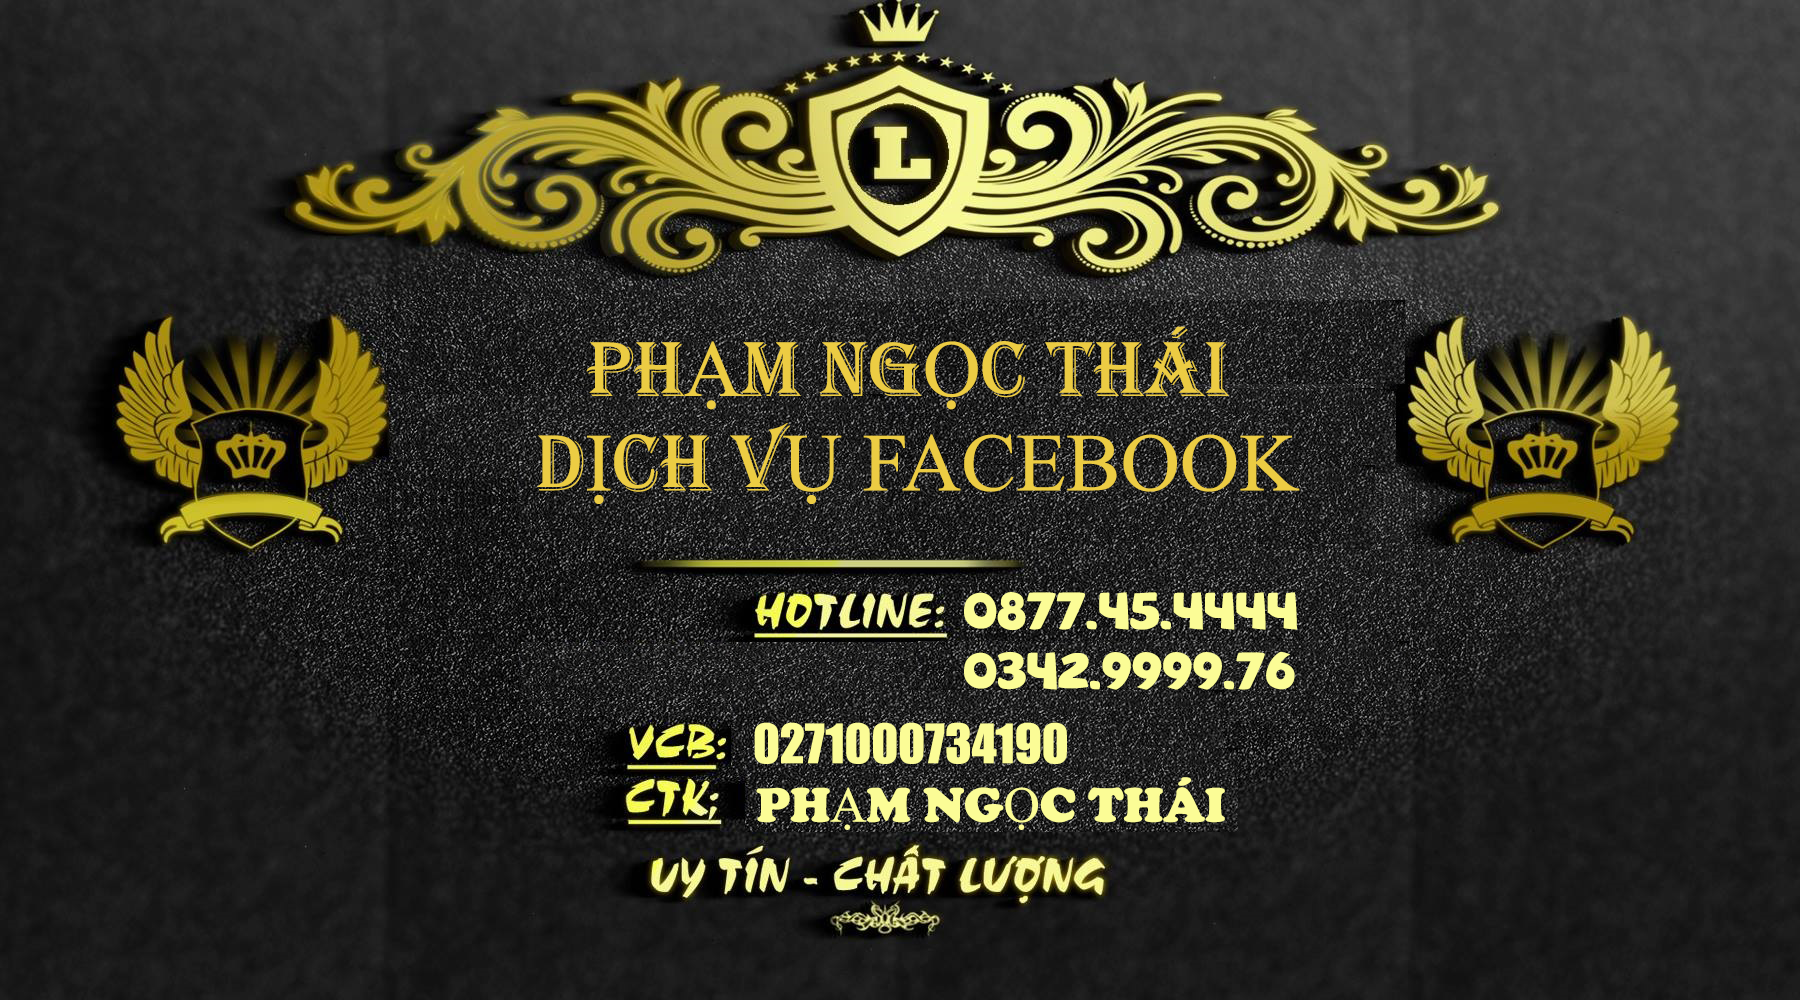 DỊCH VỤ moi.png